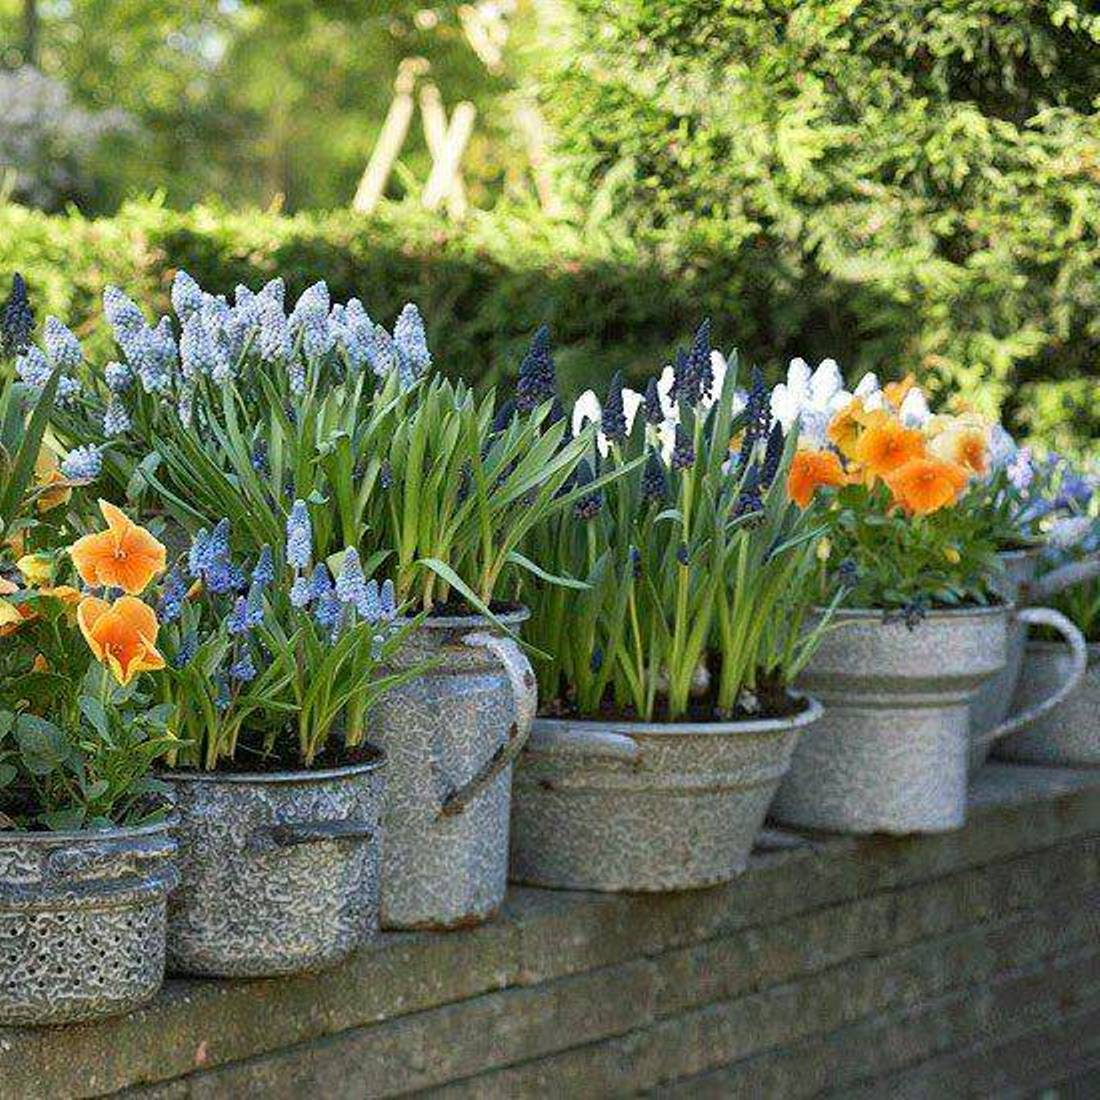 Small flower gardens ideas - Small Flower Bed Ideas Garden Design With Small Flower Garden